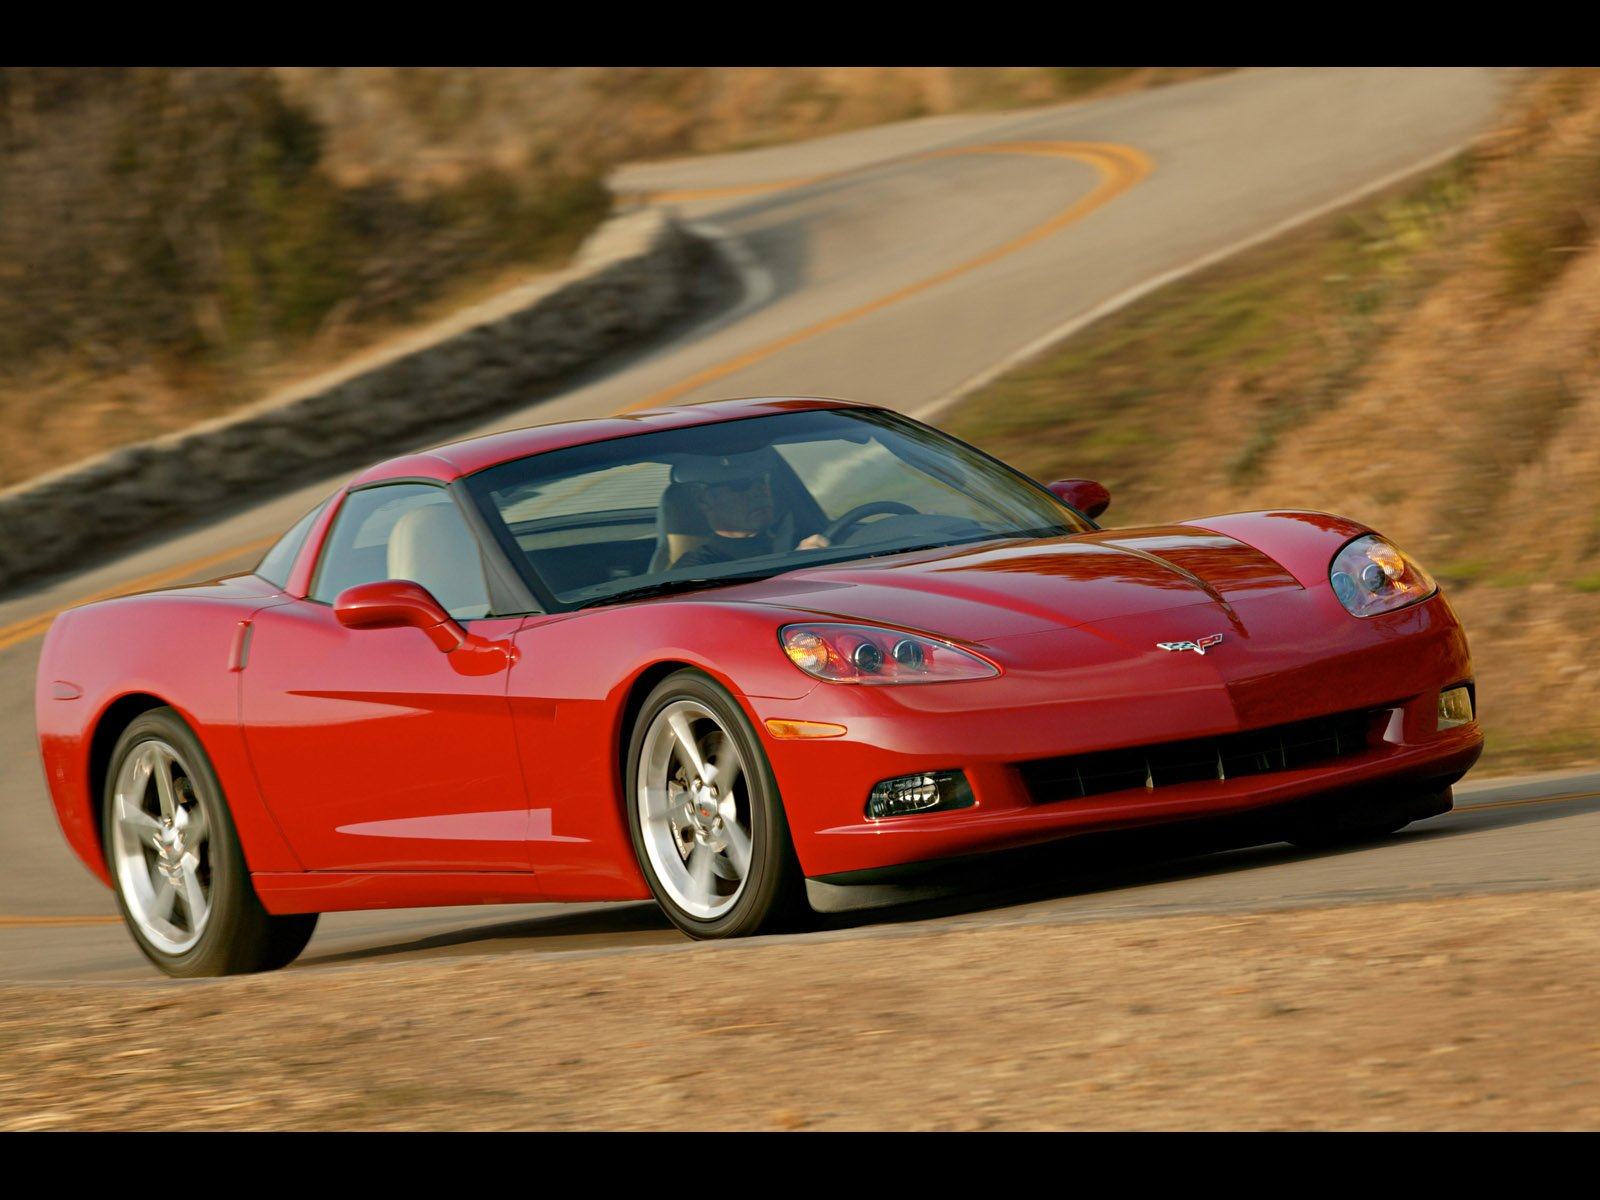 C6 Corvette Logo Wallpaper Wallpapers 1600x1200